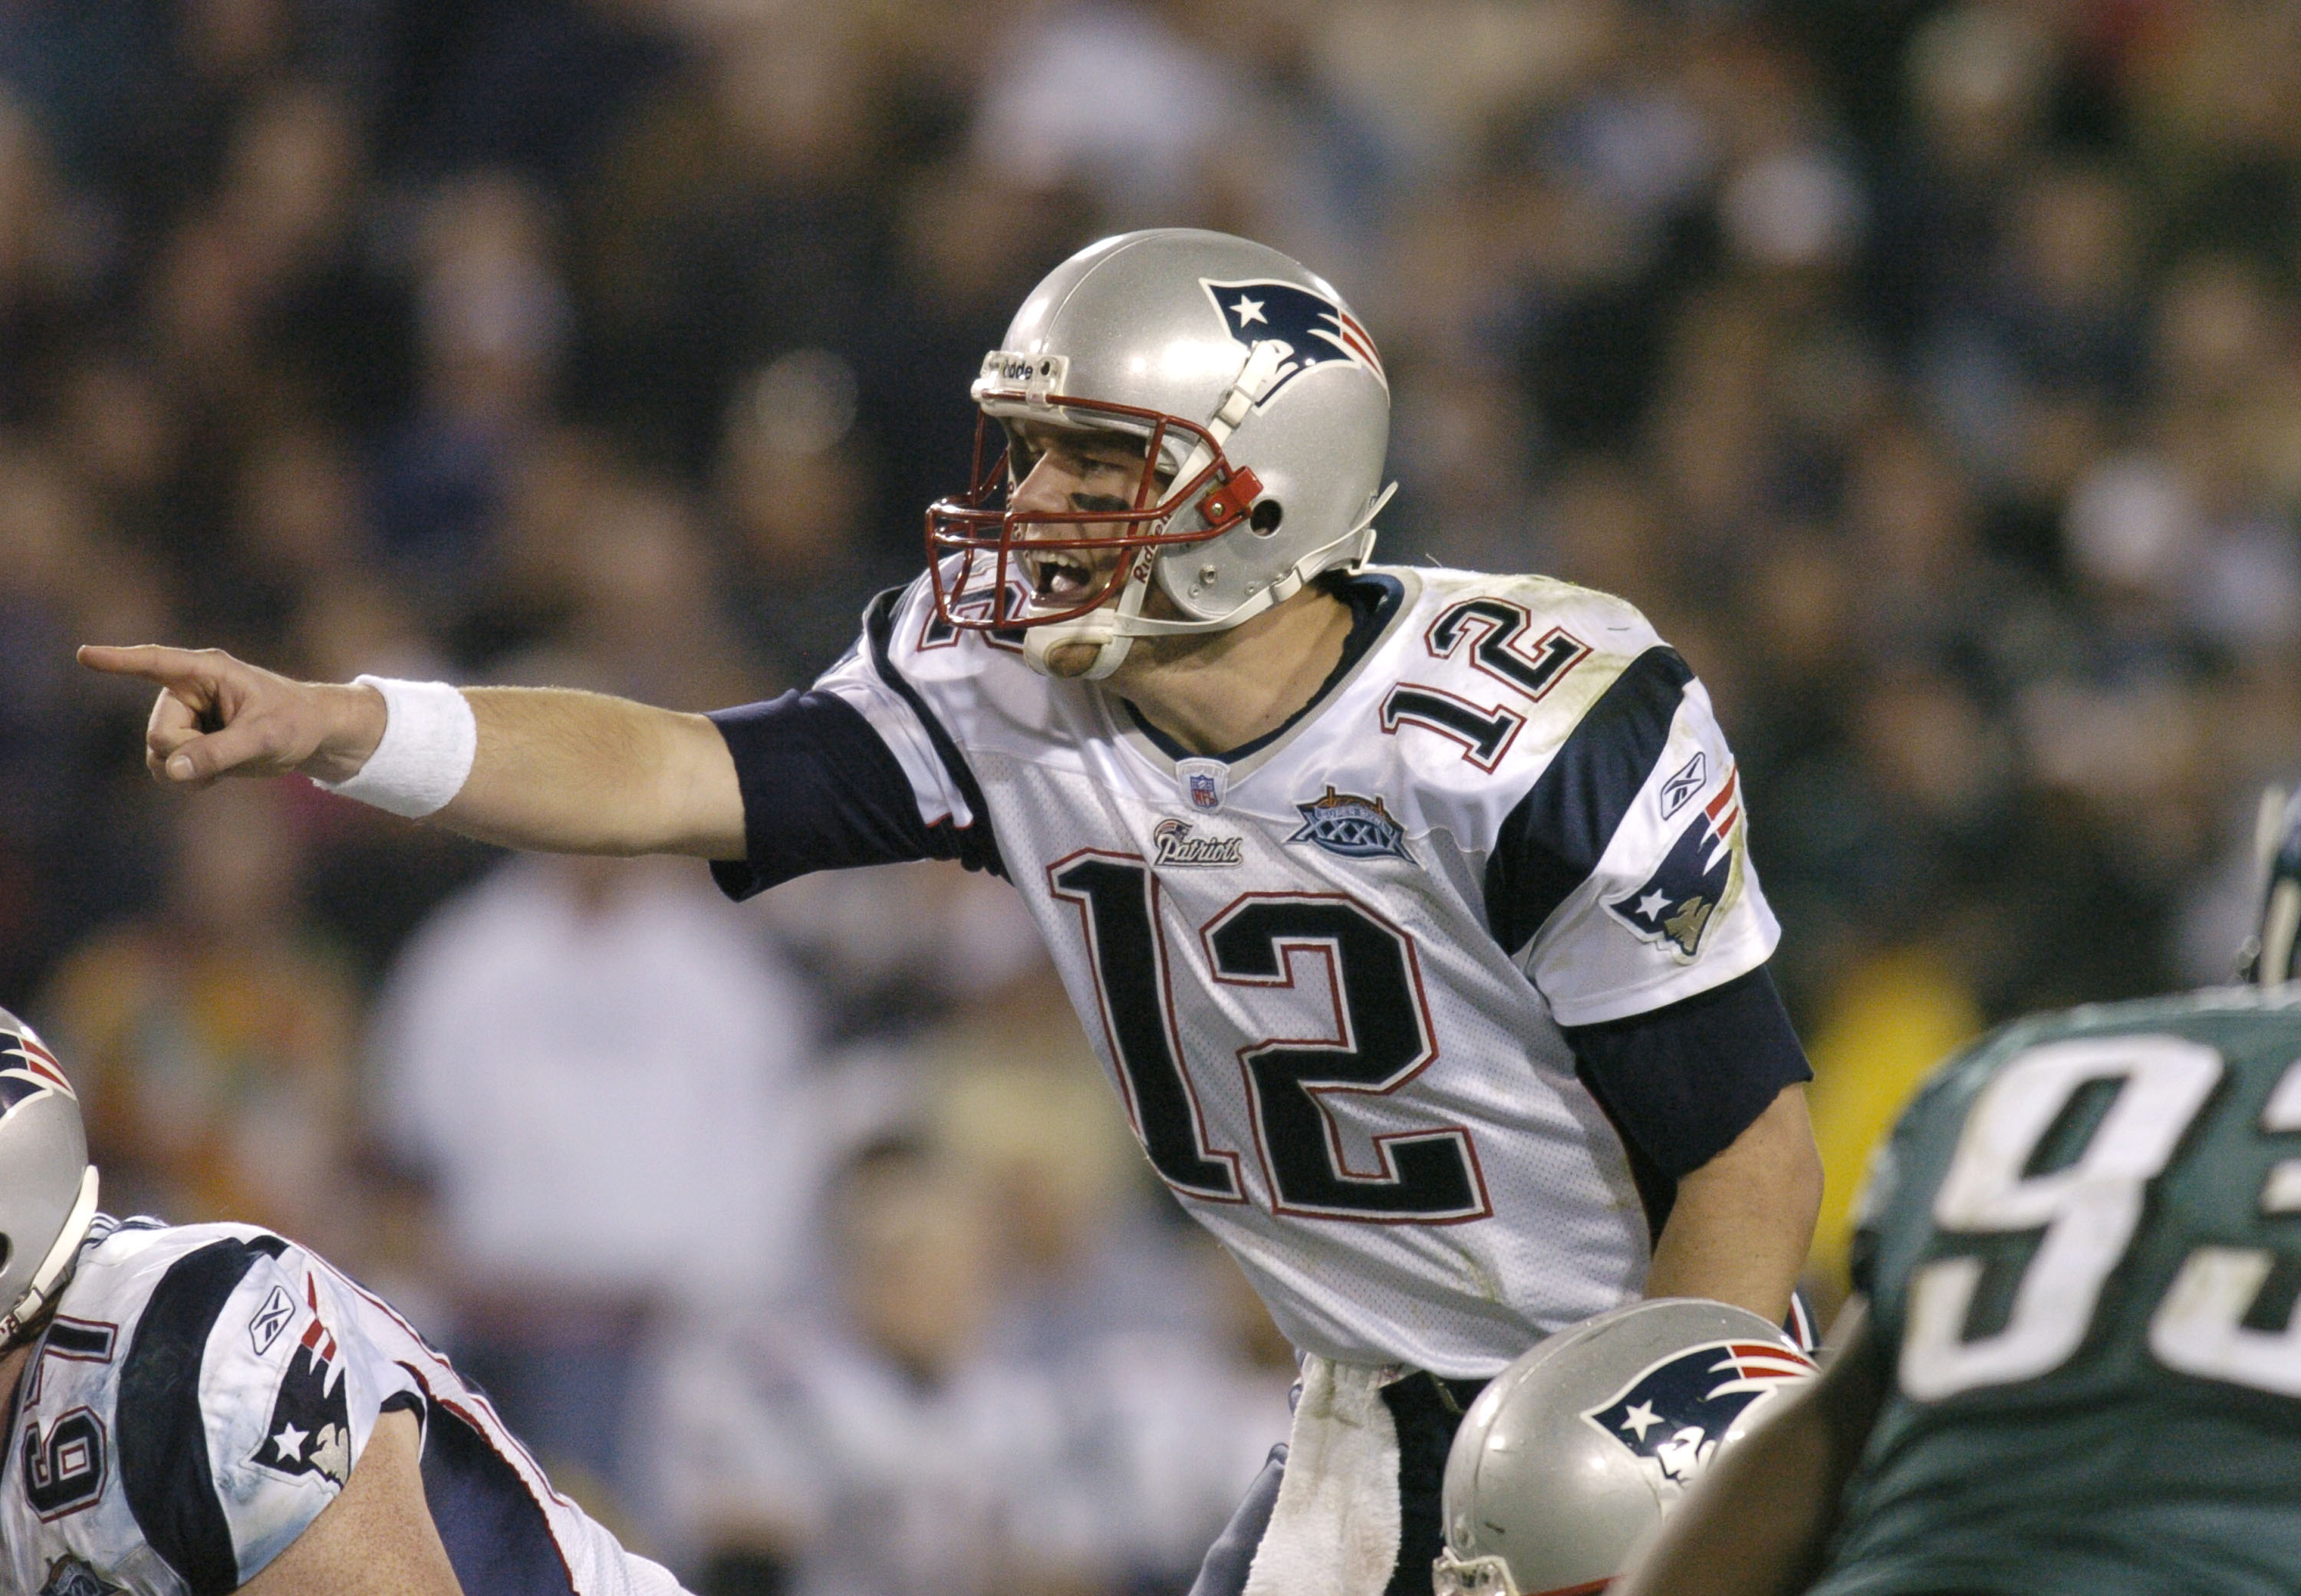 New England Patriots QB Tom Brady #12 makes a call during Super Bowl XXXIX between the Philadelphia Eagles and the New England Patriots at Alltel Stadium in Jacksonville, Florida on February 6, 2005.  (Photo by Al Messerschmidt/Getty Images)